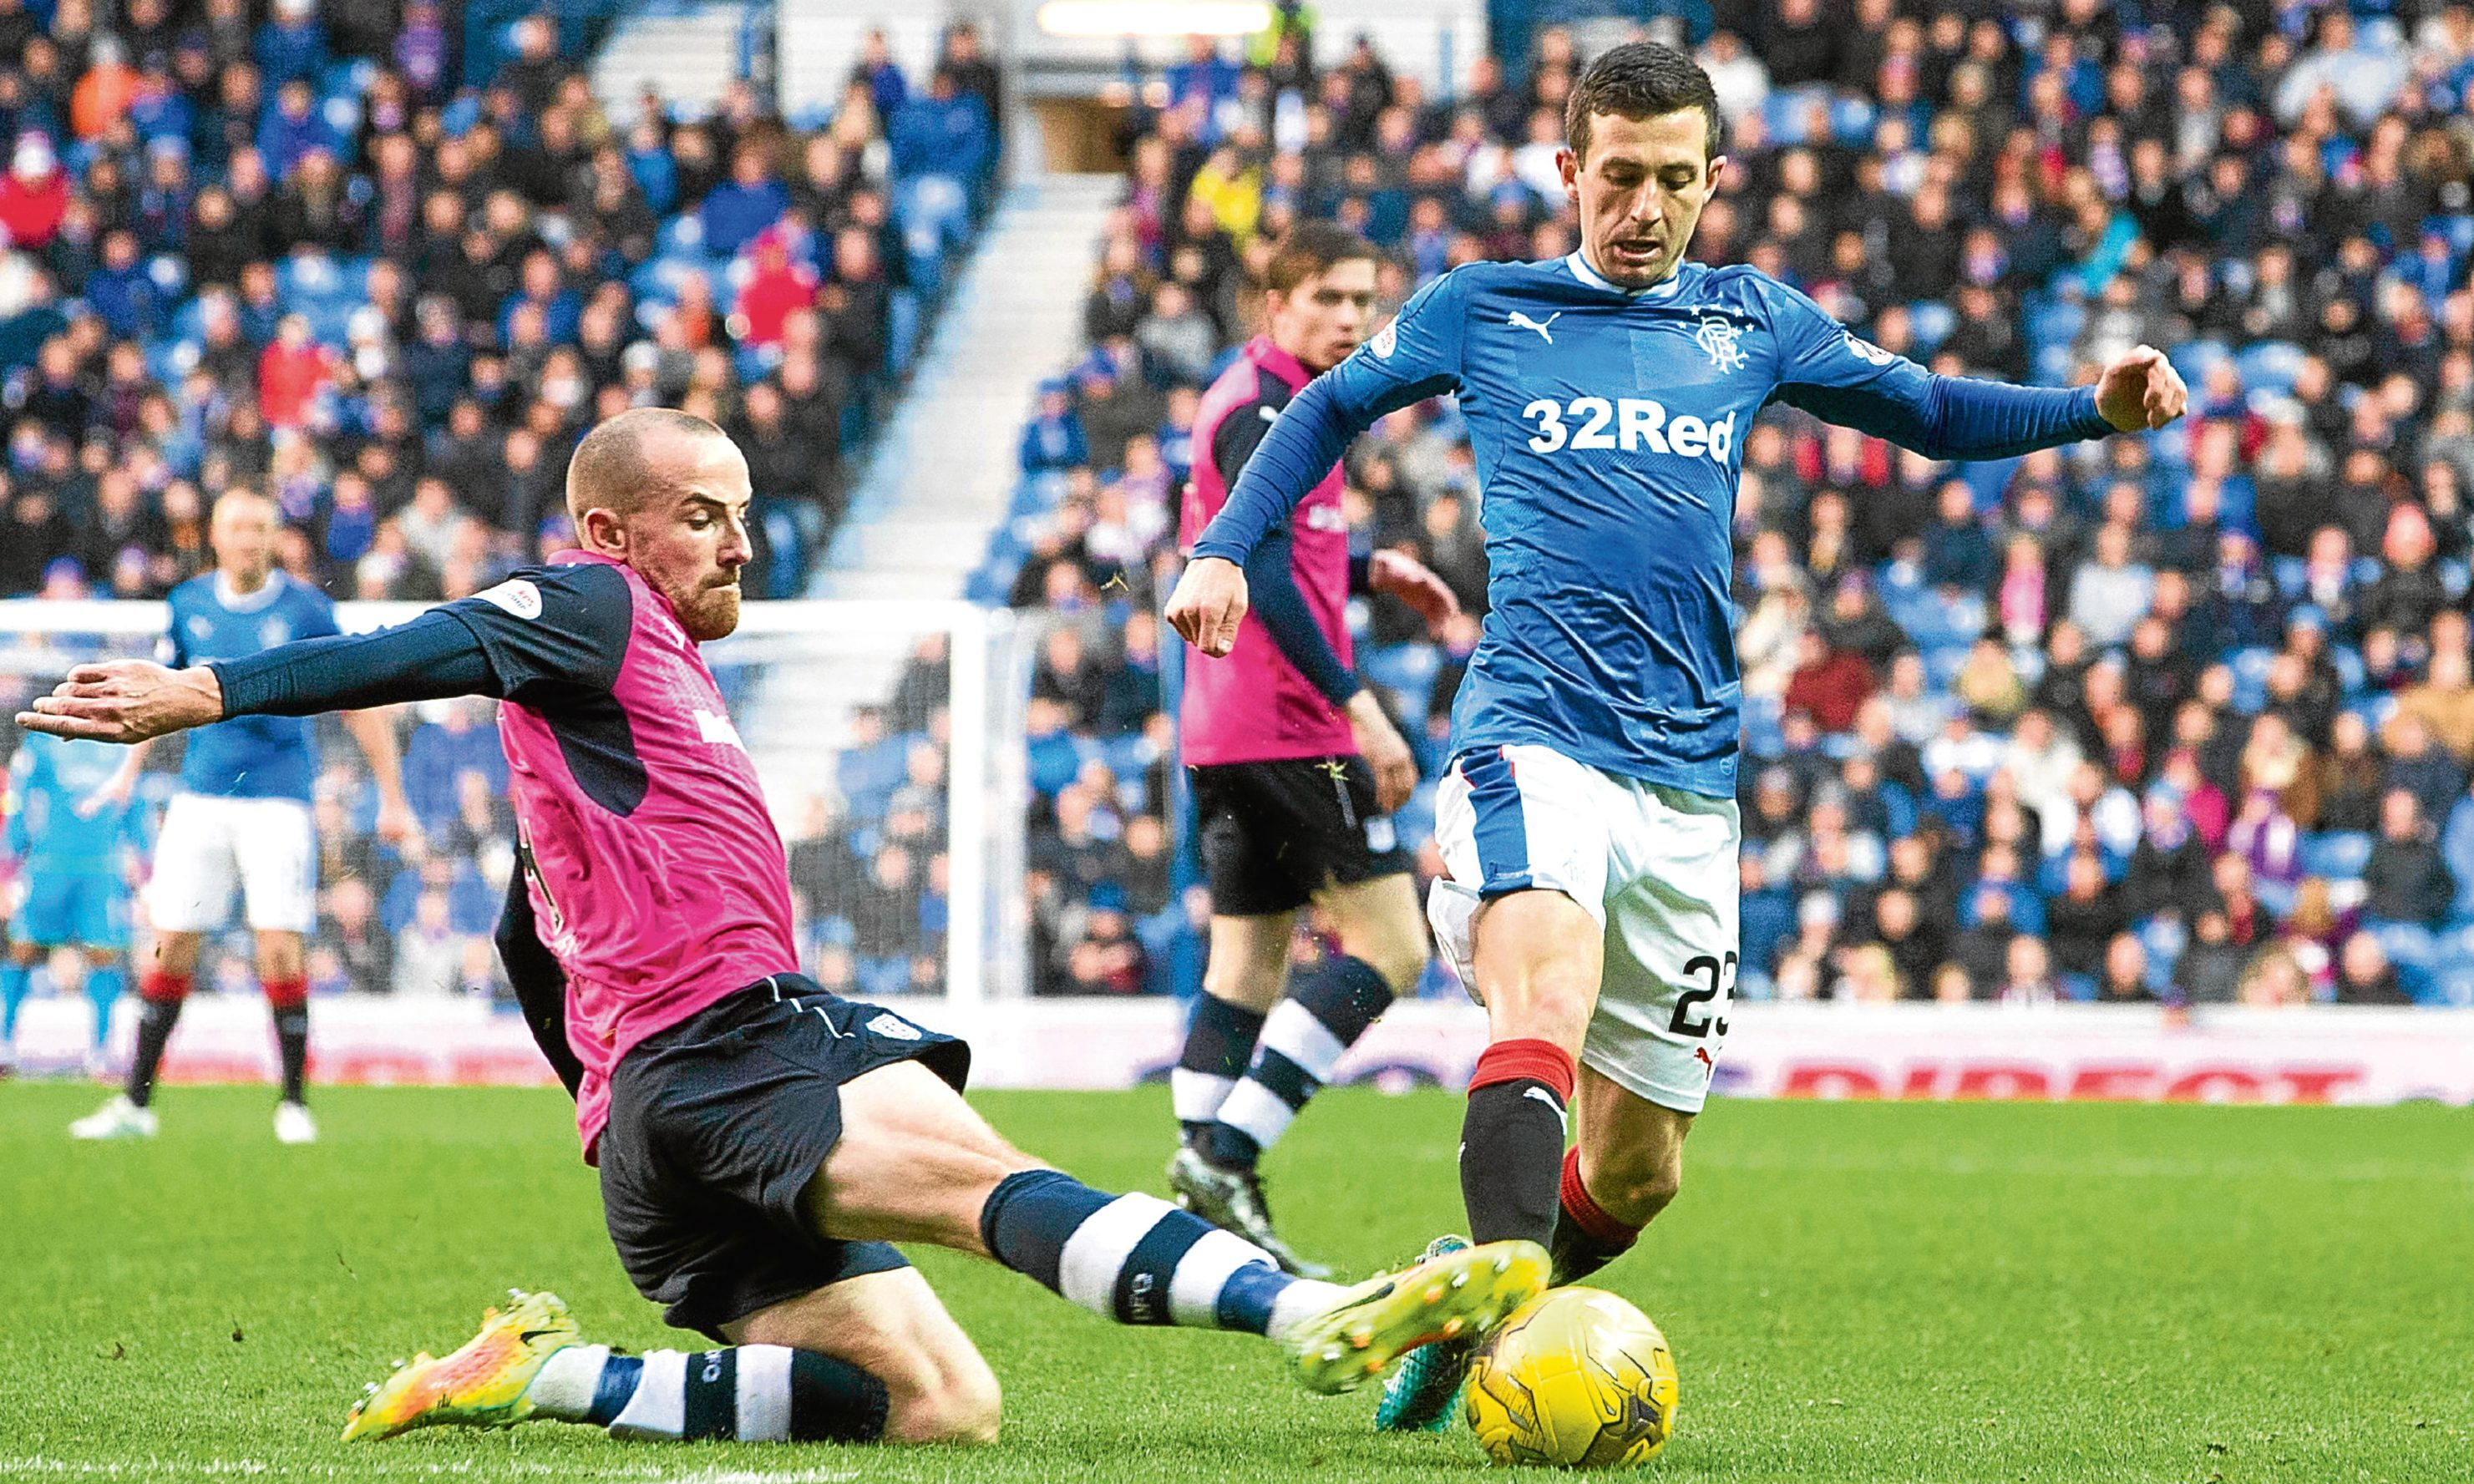 Dundee's James Vincent displays the kind of fighting qualities Dundee will need when Inverness visit Dens as he puts in a timely tackle against Rangers' Jason Holt last Saturday.